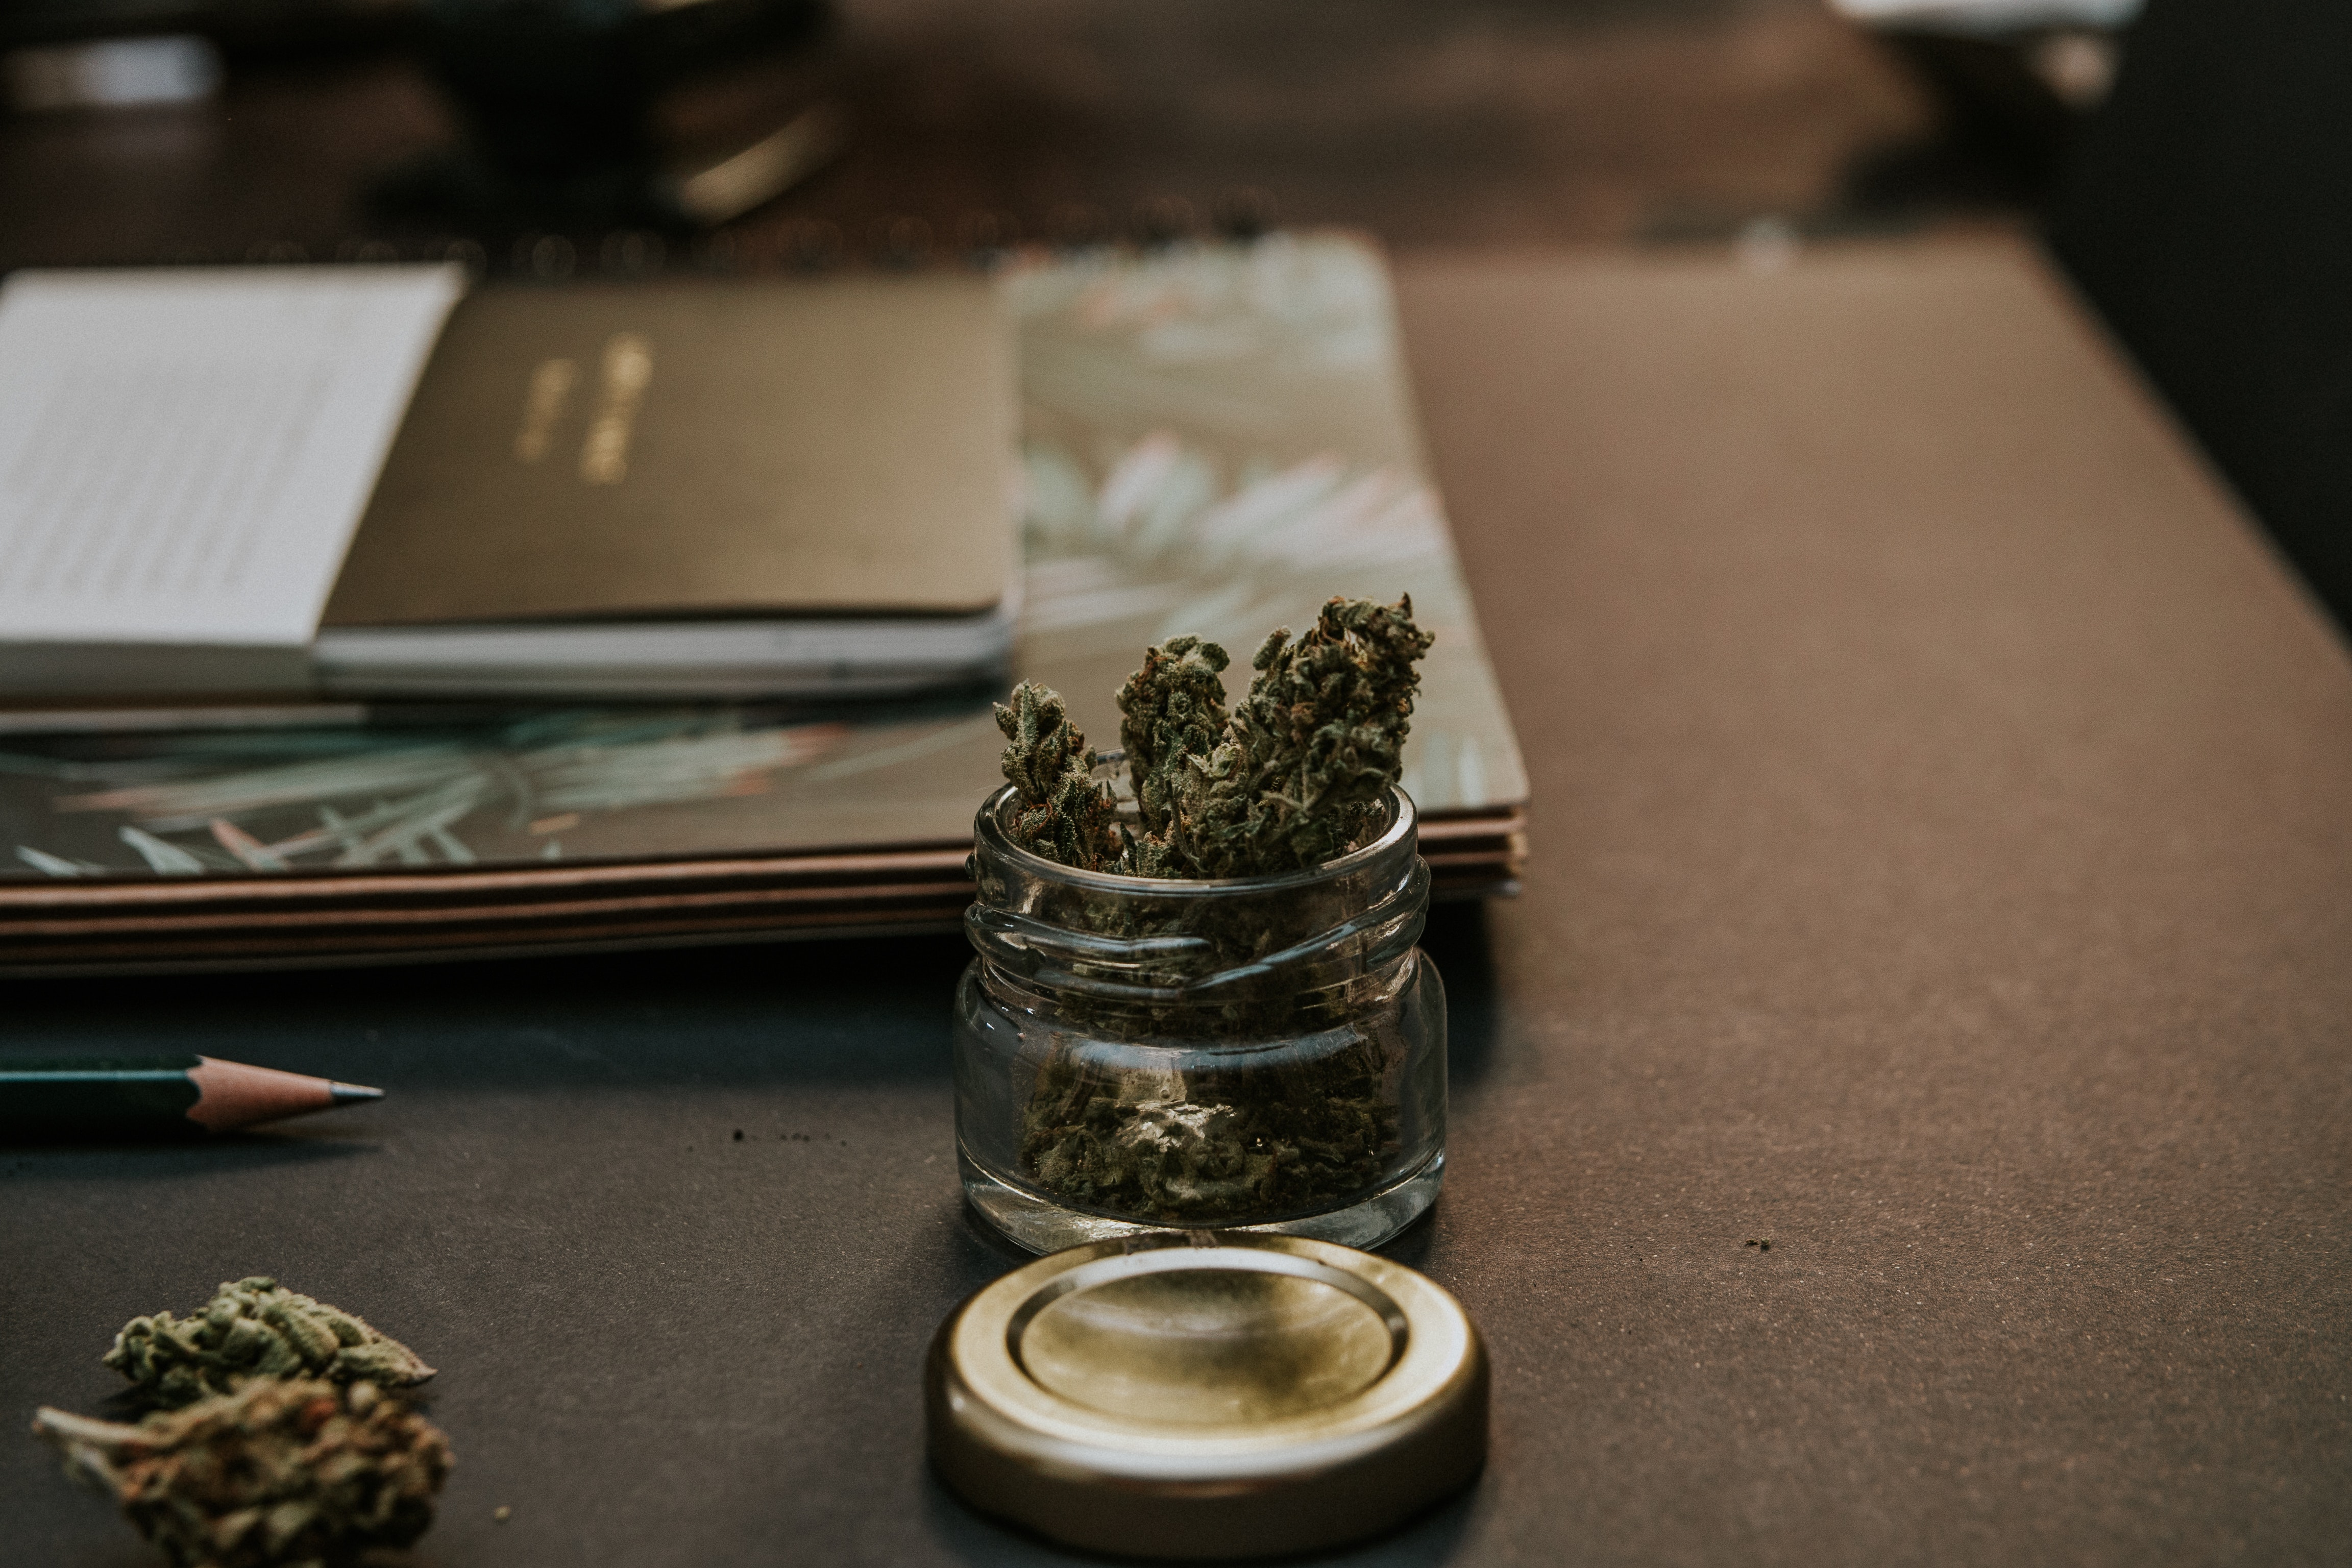 Cannabis in a jar next to a desk and papers